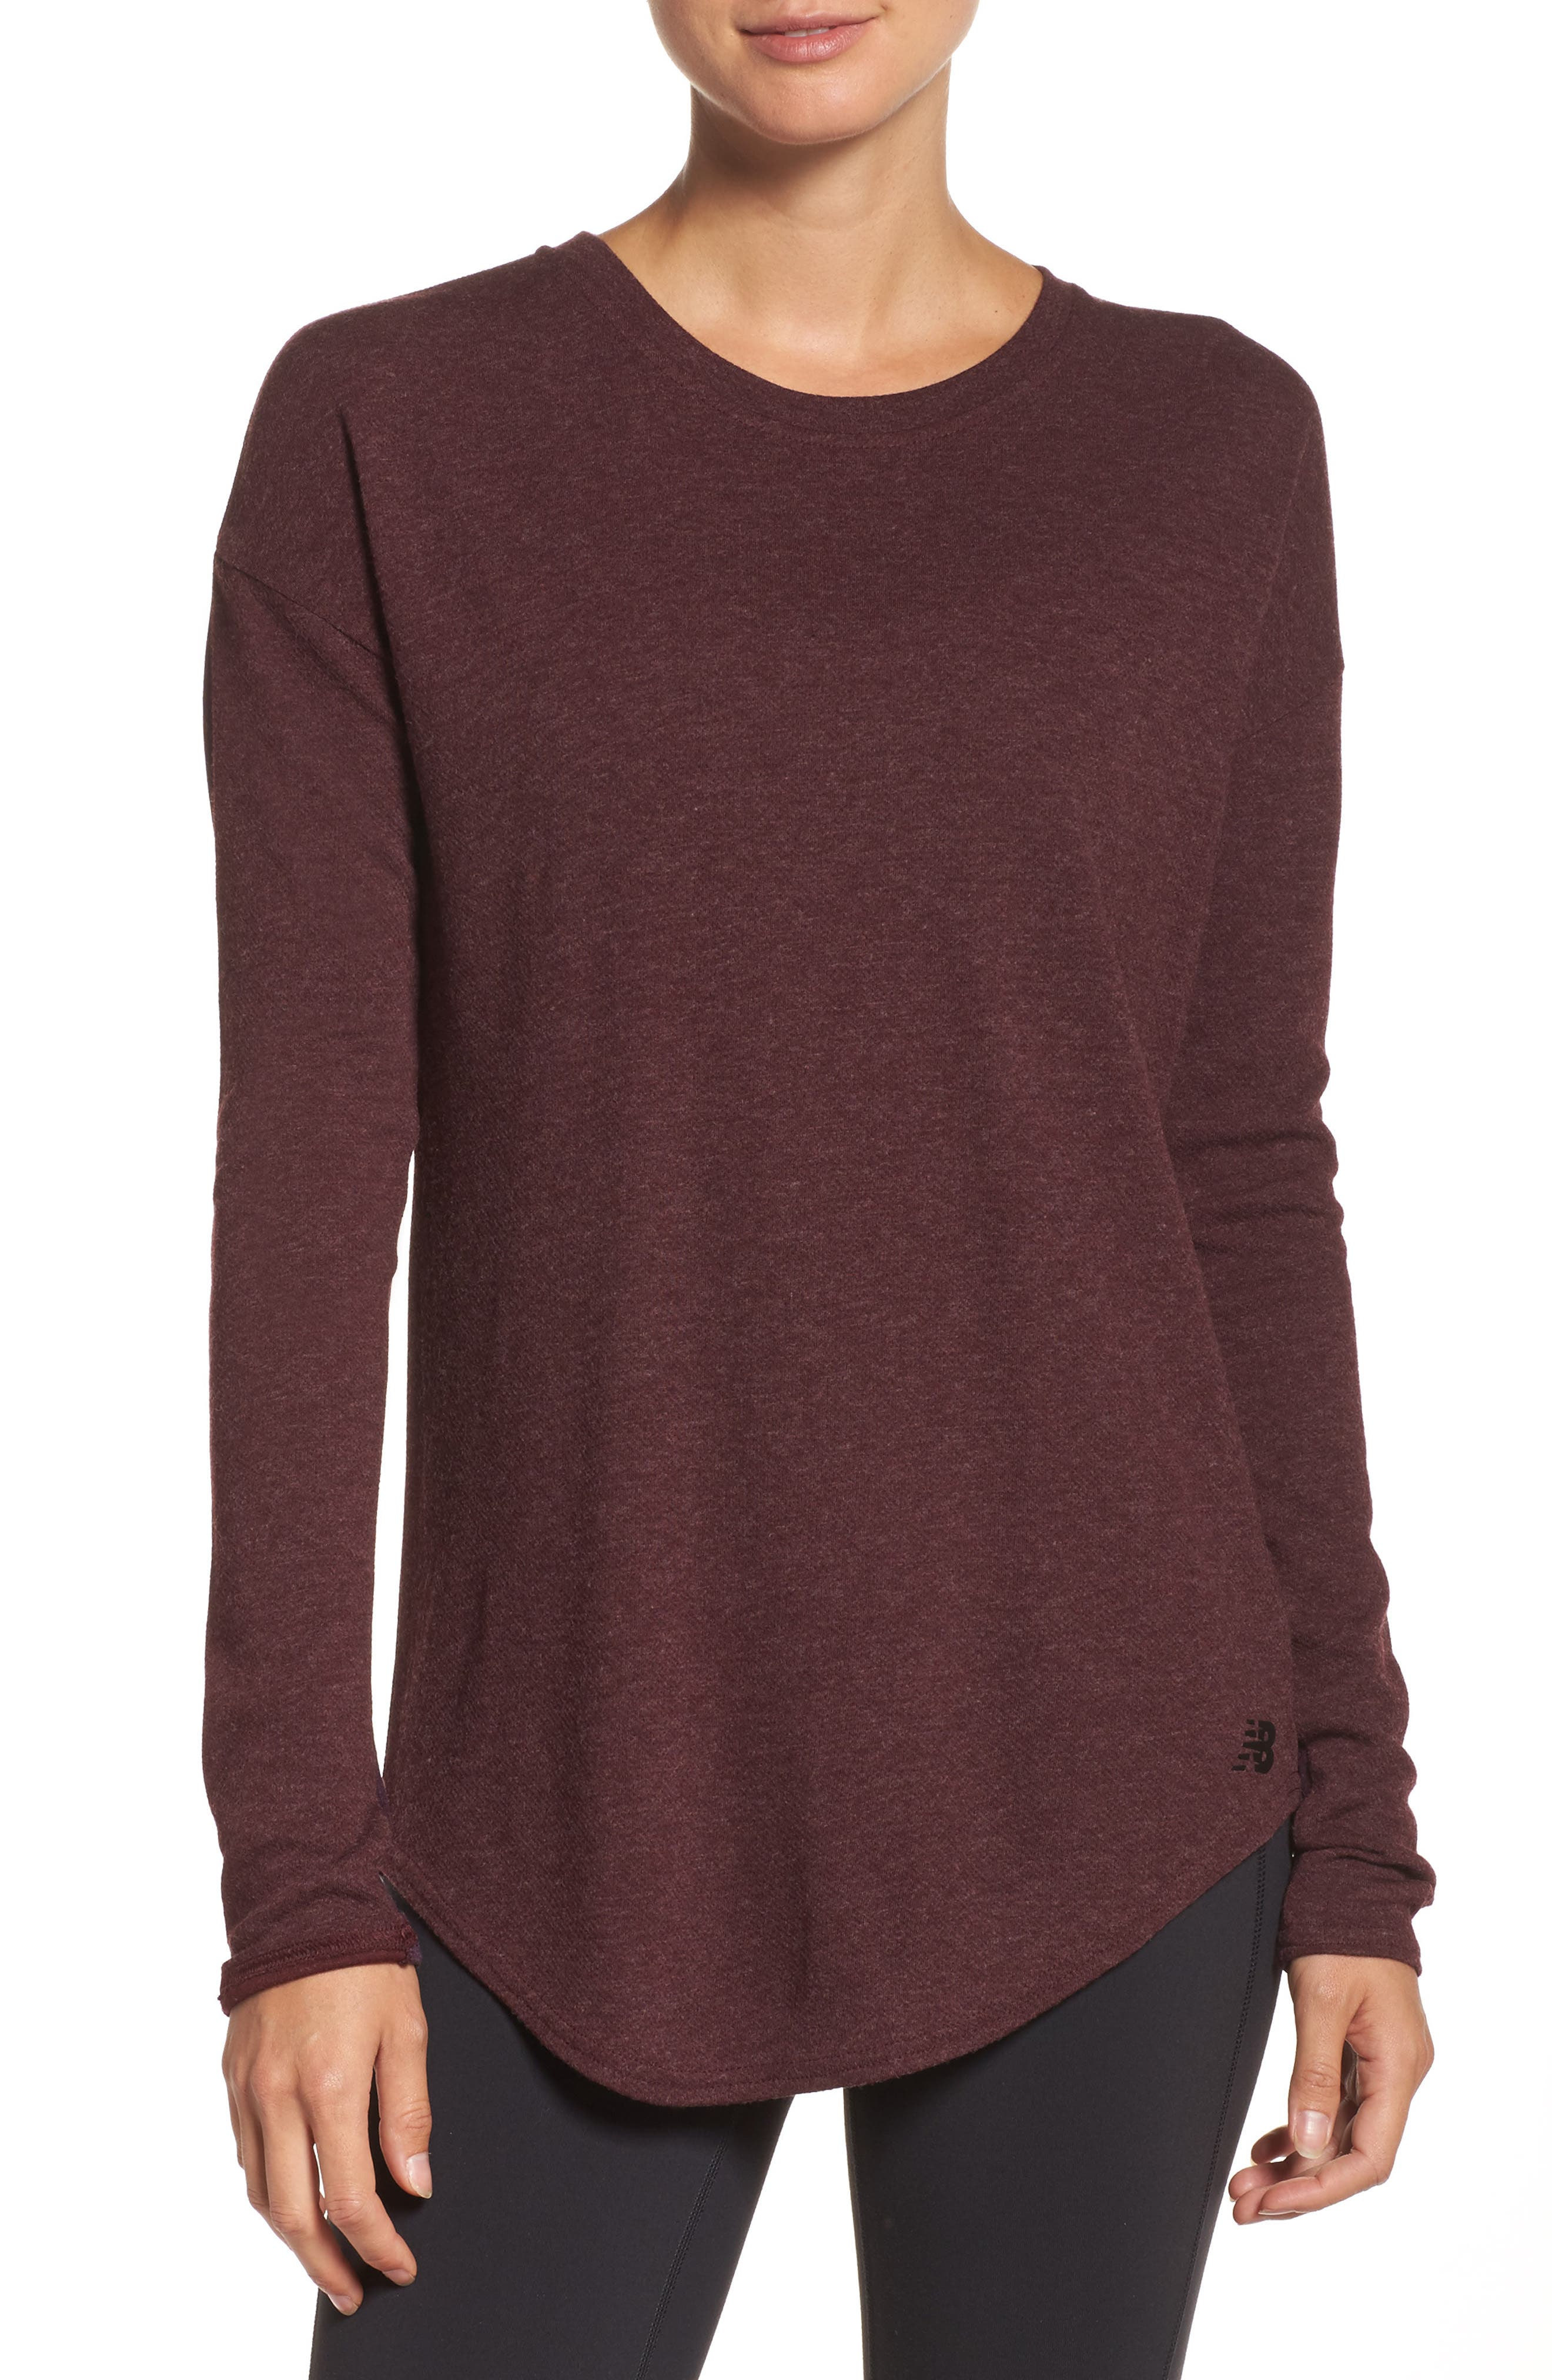 247 Luxe Long Sleeve Tee,                         Main,                         color, 930